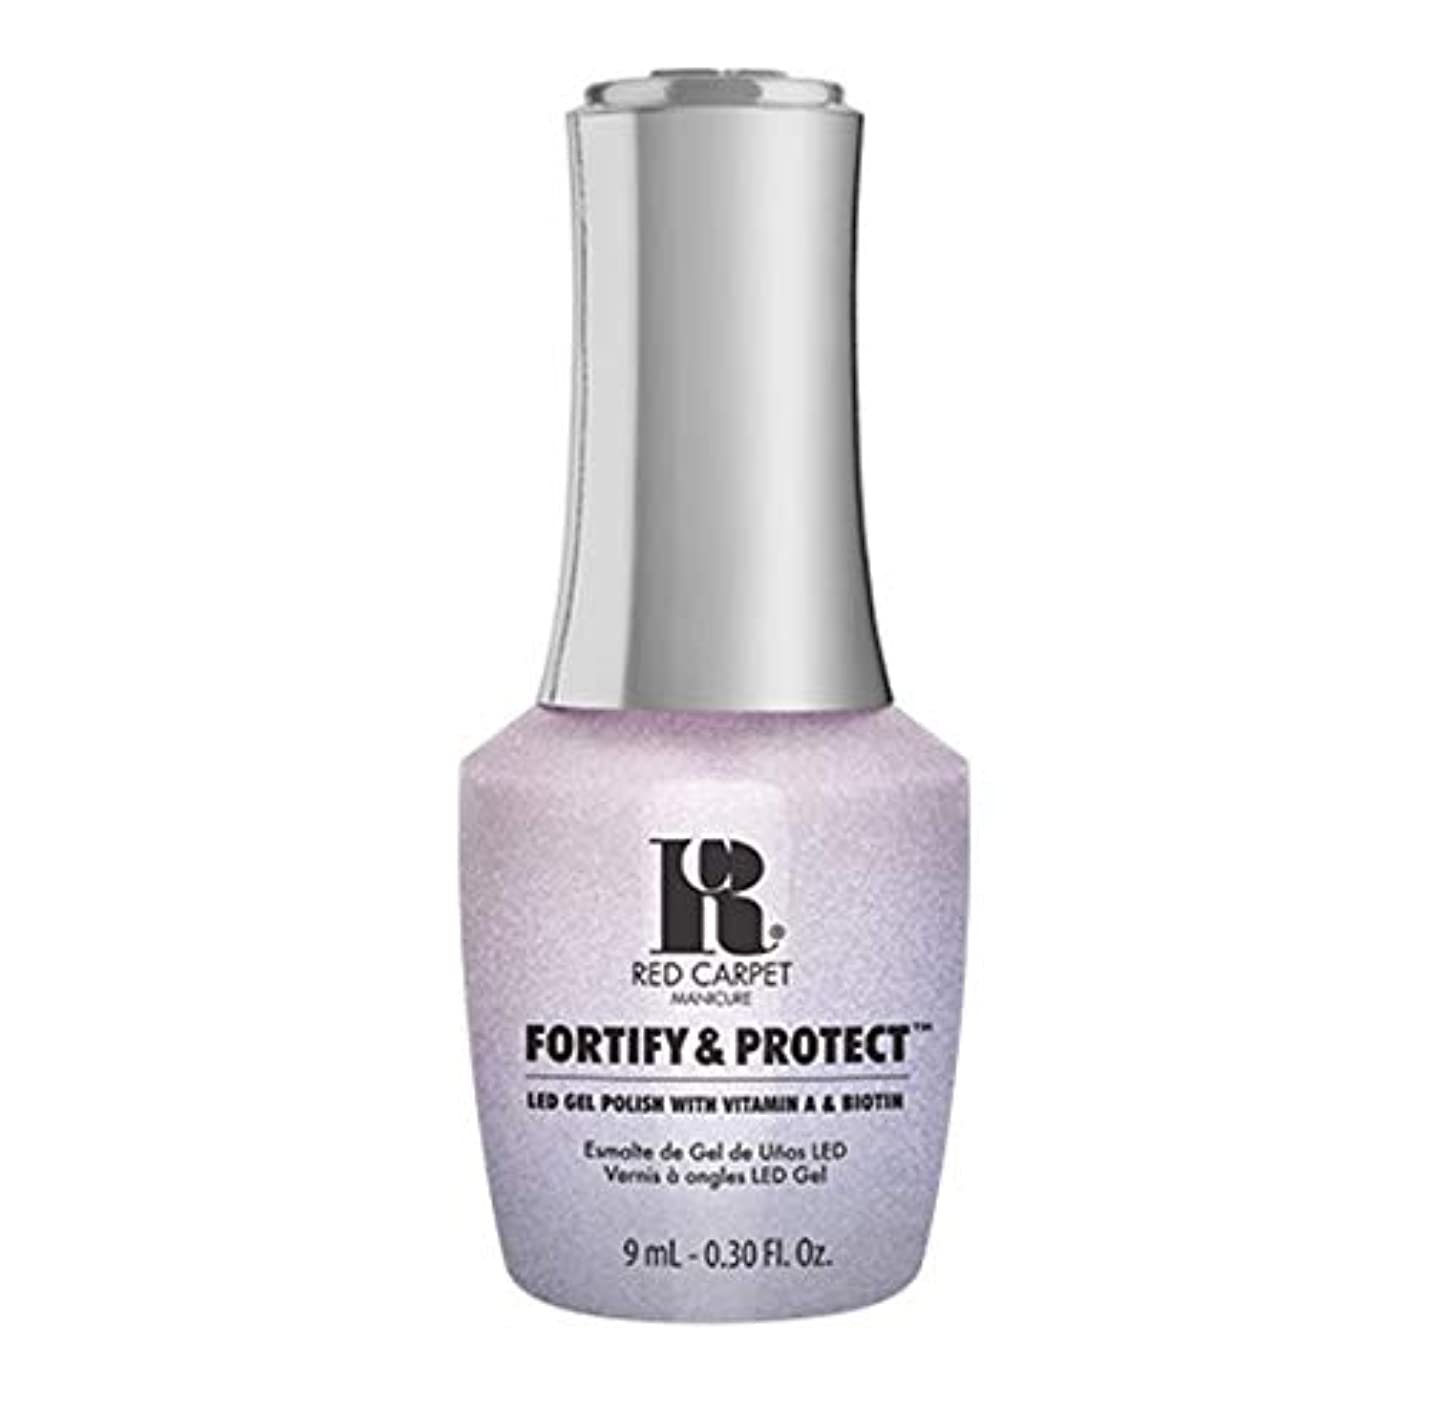 願望強いますメッセージRed Carpet Manicure - Fortify & Protect - My Diamonds Sparkle - 9ml / 0.30oz